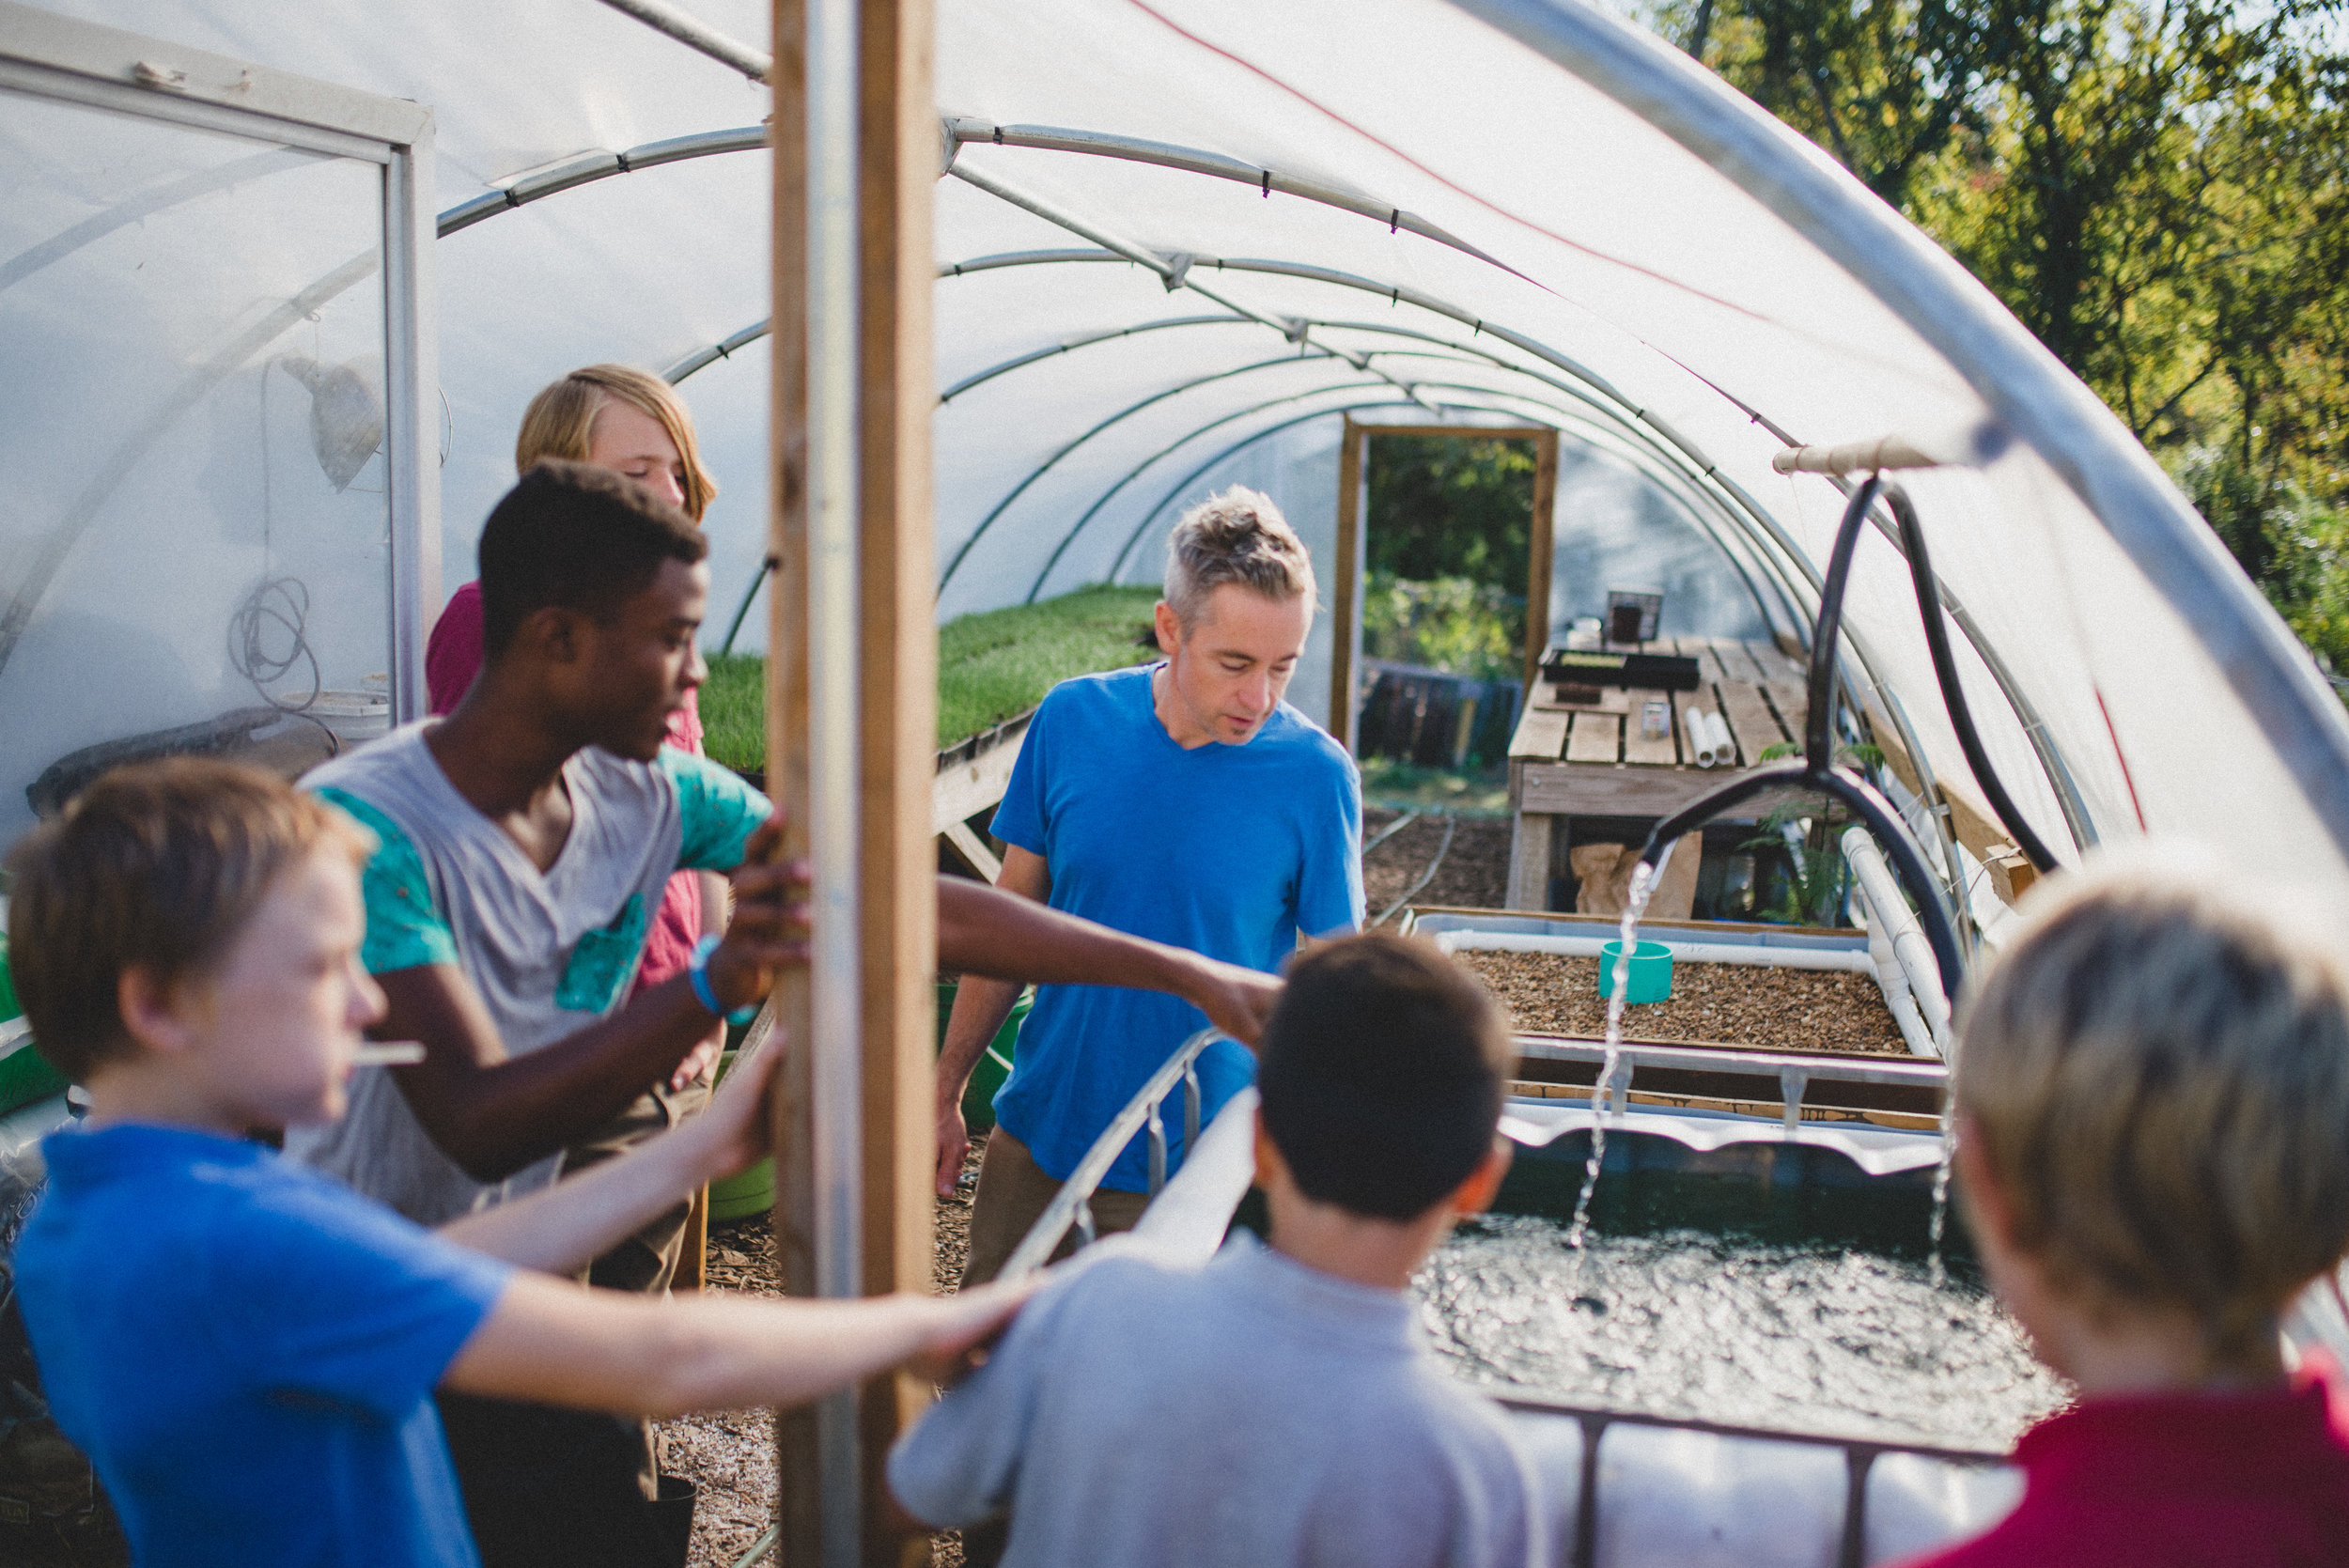 Junior high and high school students at the Academy for G.O.D. helped design, build and implement an aquaponics system at Hopewell Gardens. Nutrient-rich water produced by fish in the tank is transferred to assist in the growth of plant life in the garden. Watching the students take on ownership for an innovative project was truly awesome.